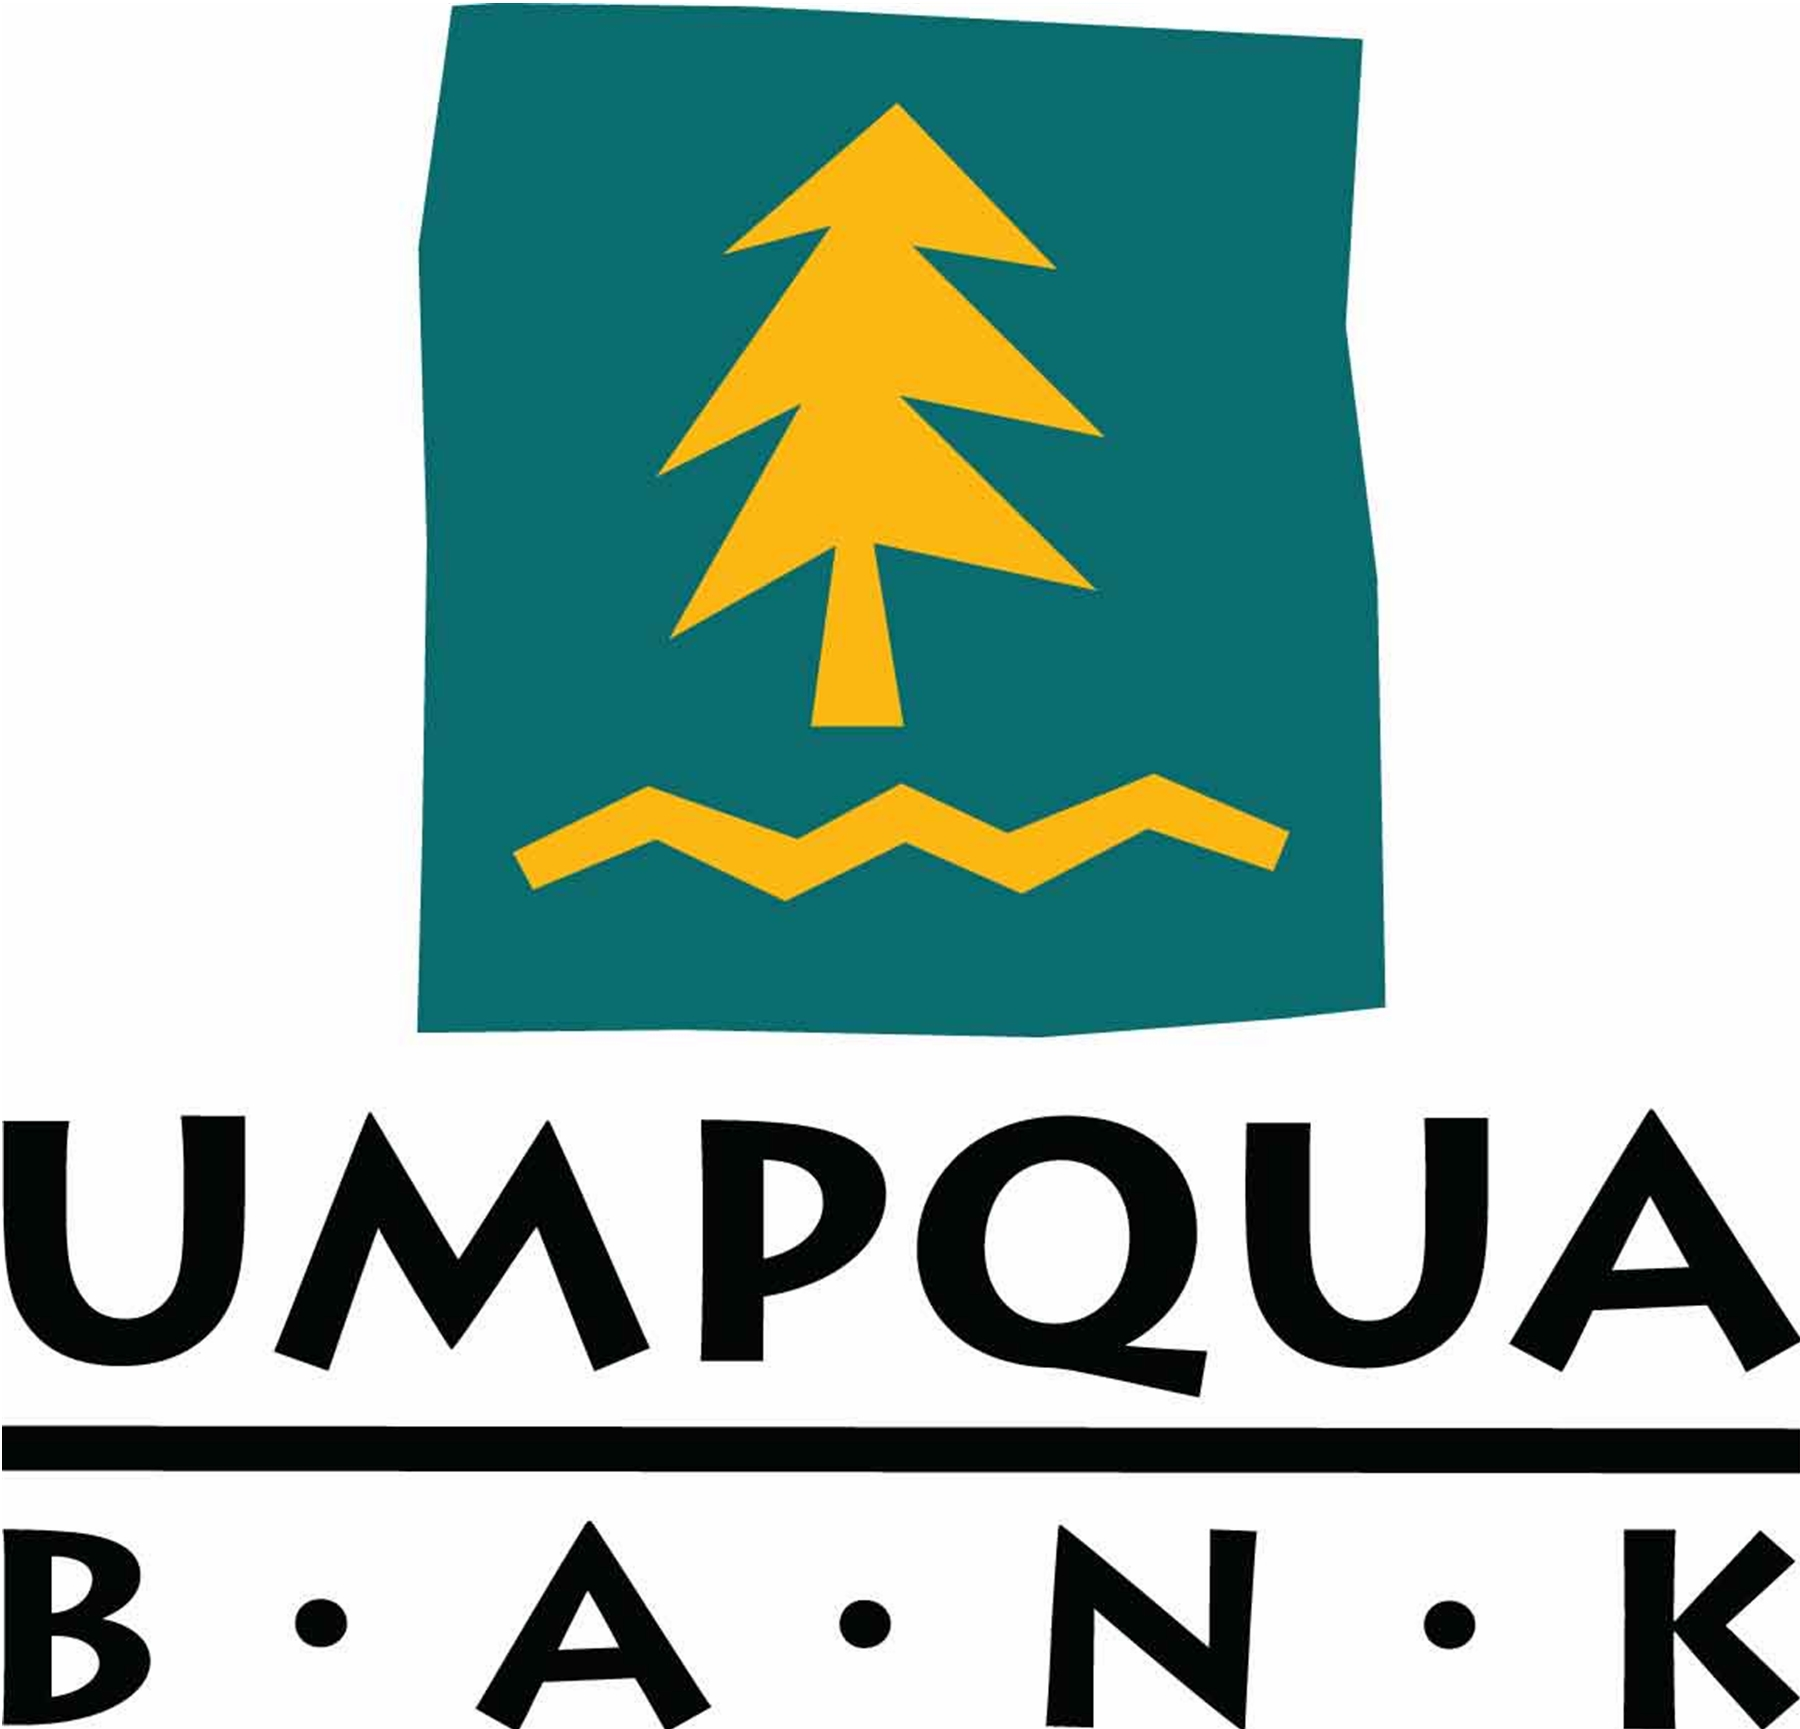 No Credit Check Credit Cards >> Umpqua Bank Credit Card Payment - Login - Address - Customer Service